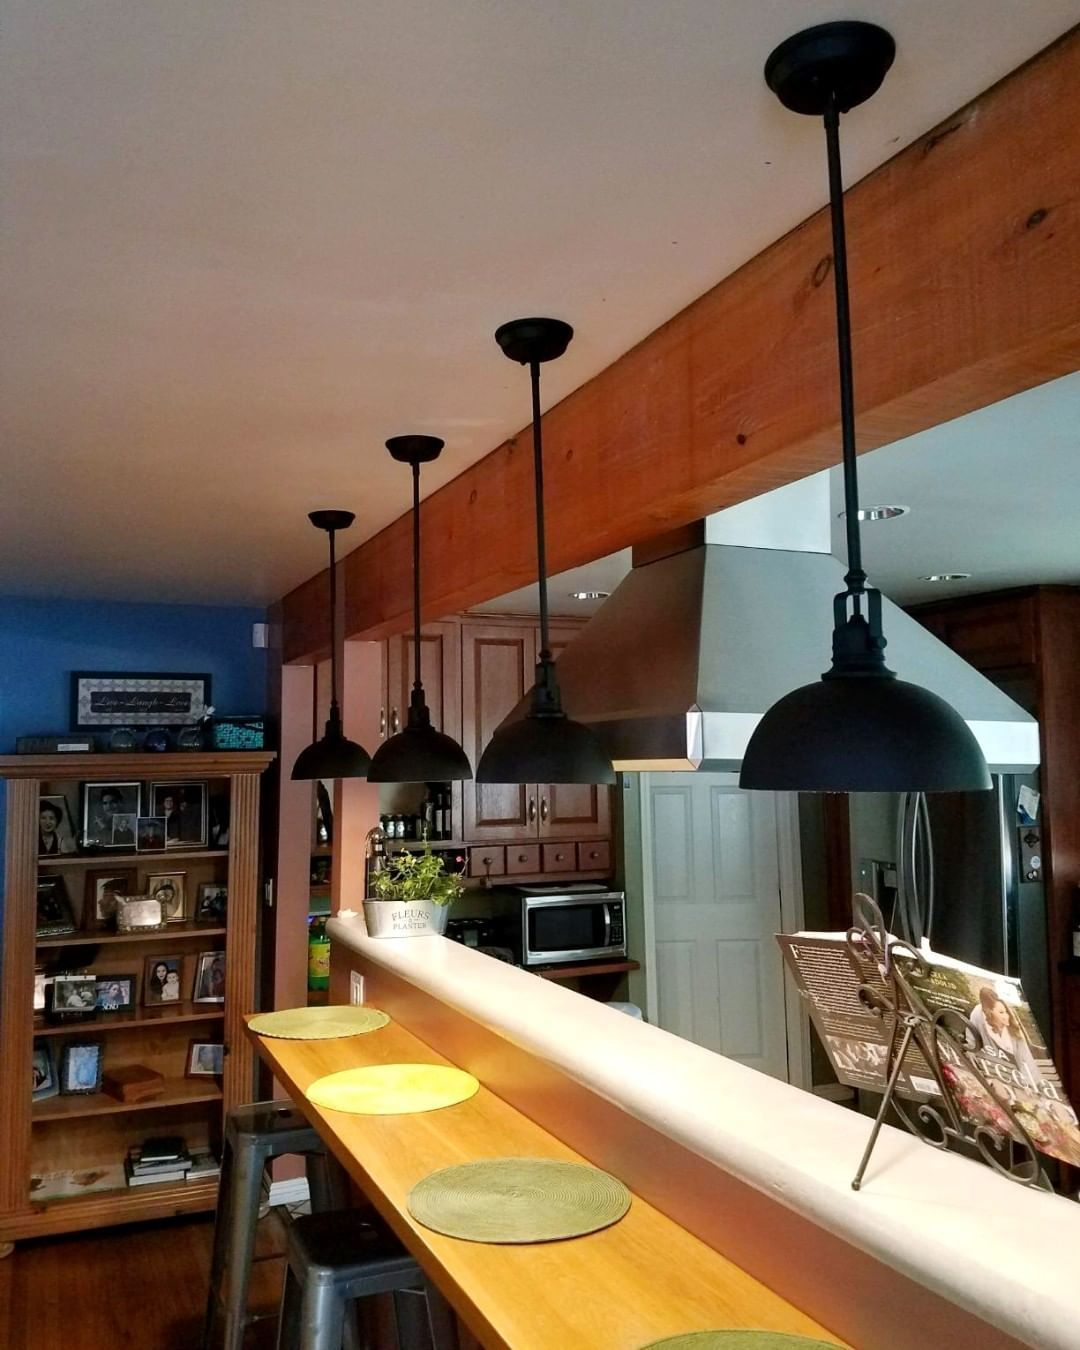 The simplistic design of the Belle pendant adds as a